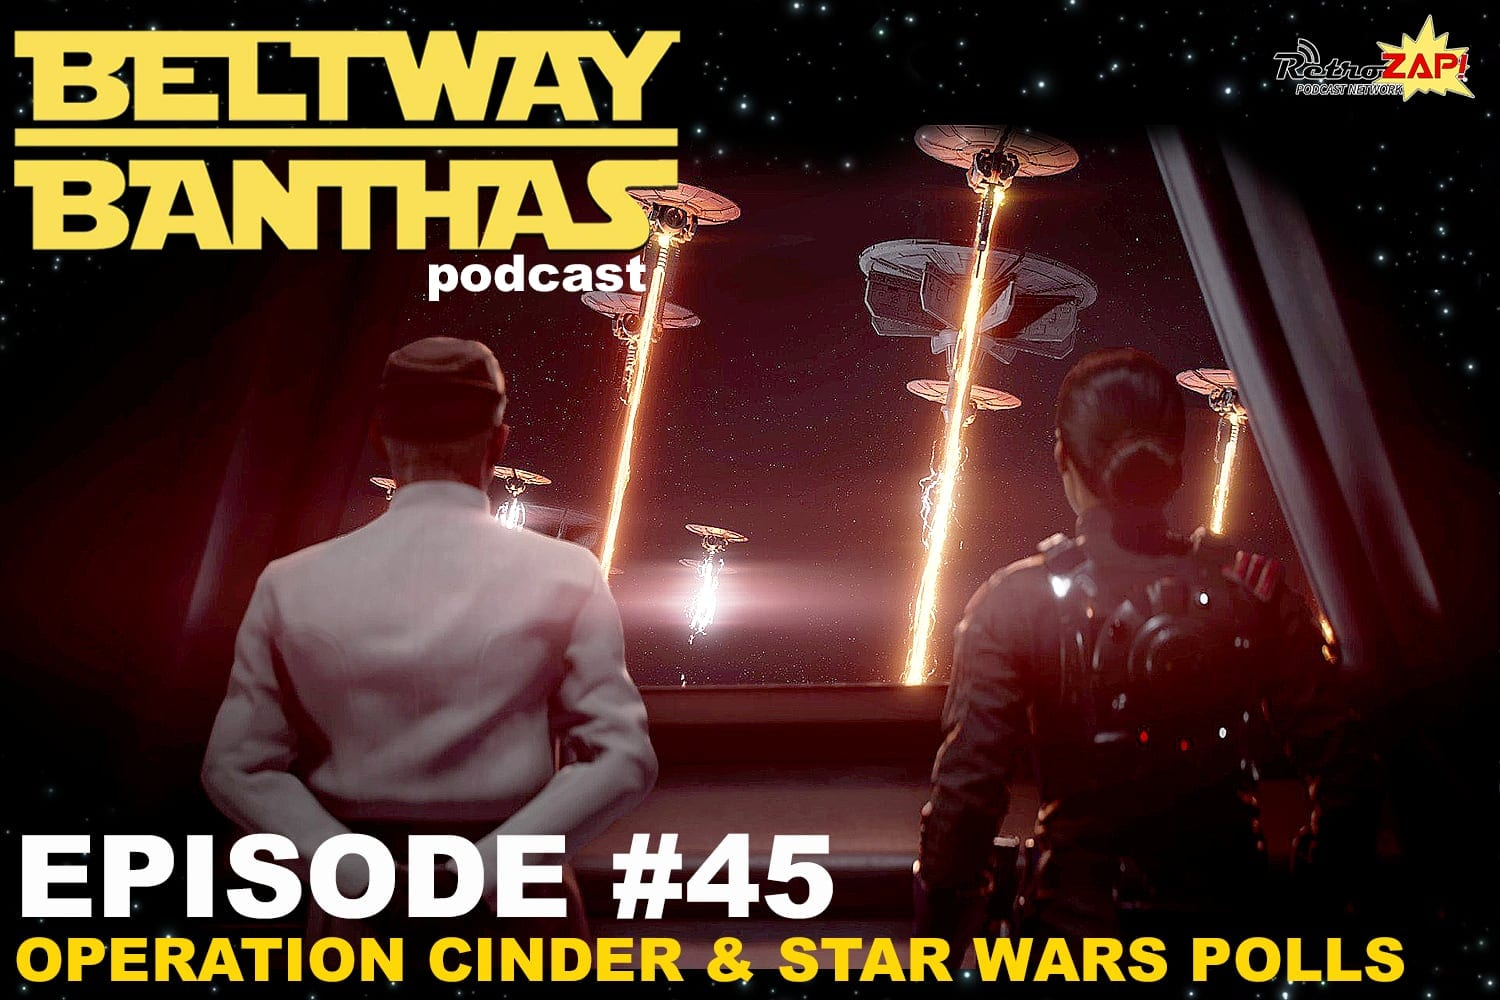 Beltway Banthas Episode #45: Operation Cinder & Star Wars Polls